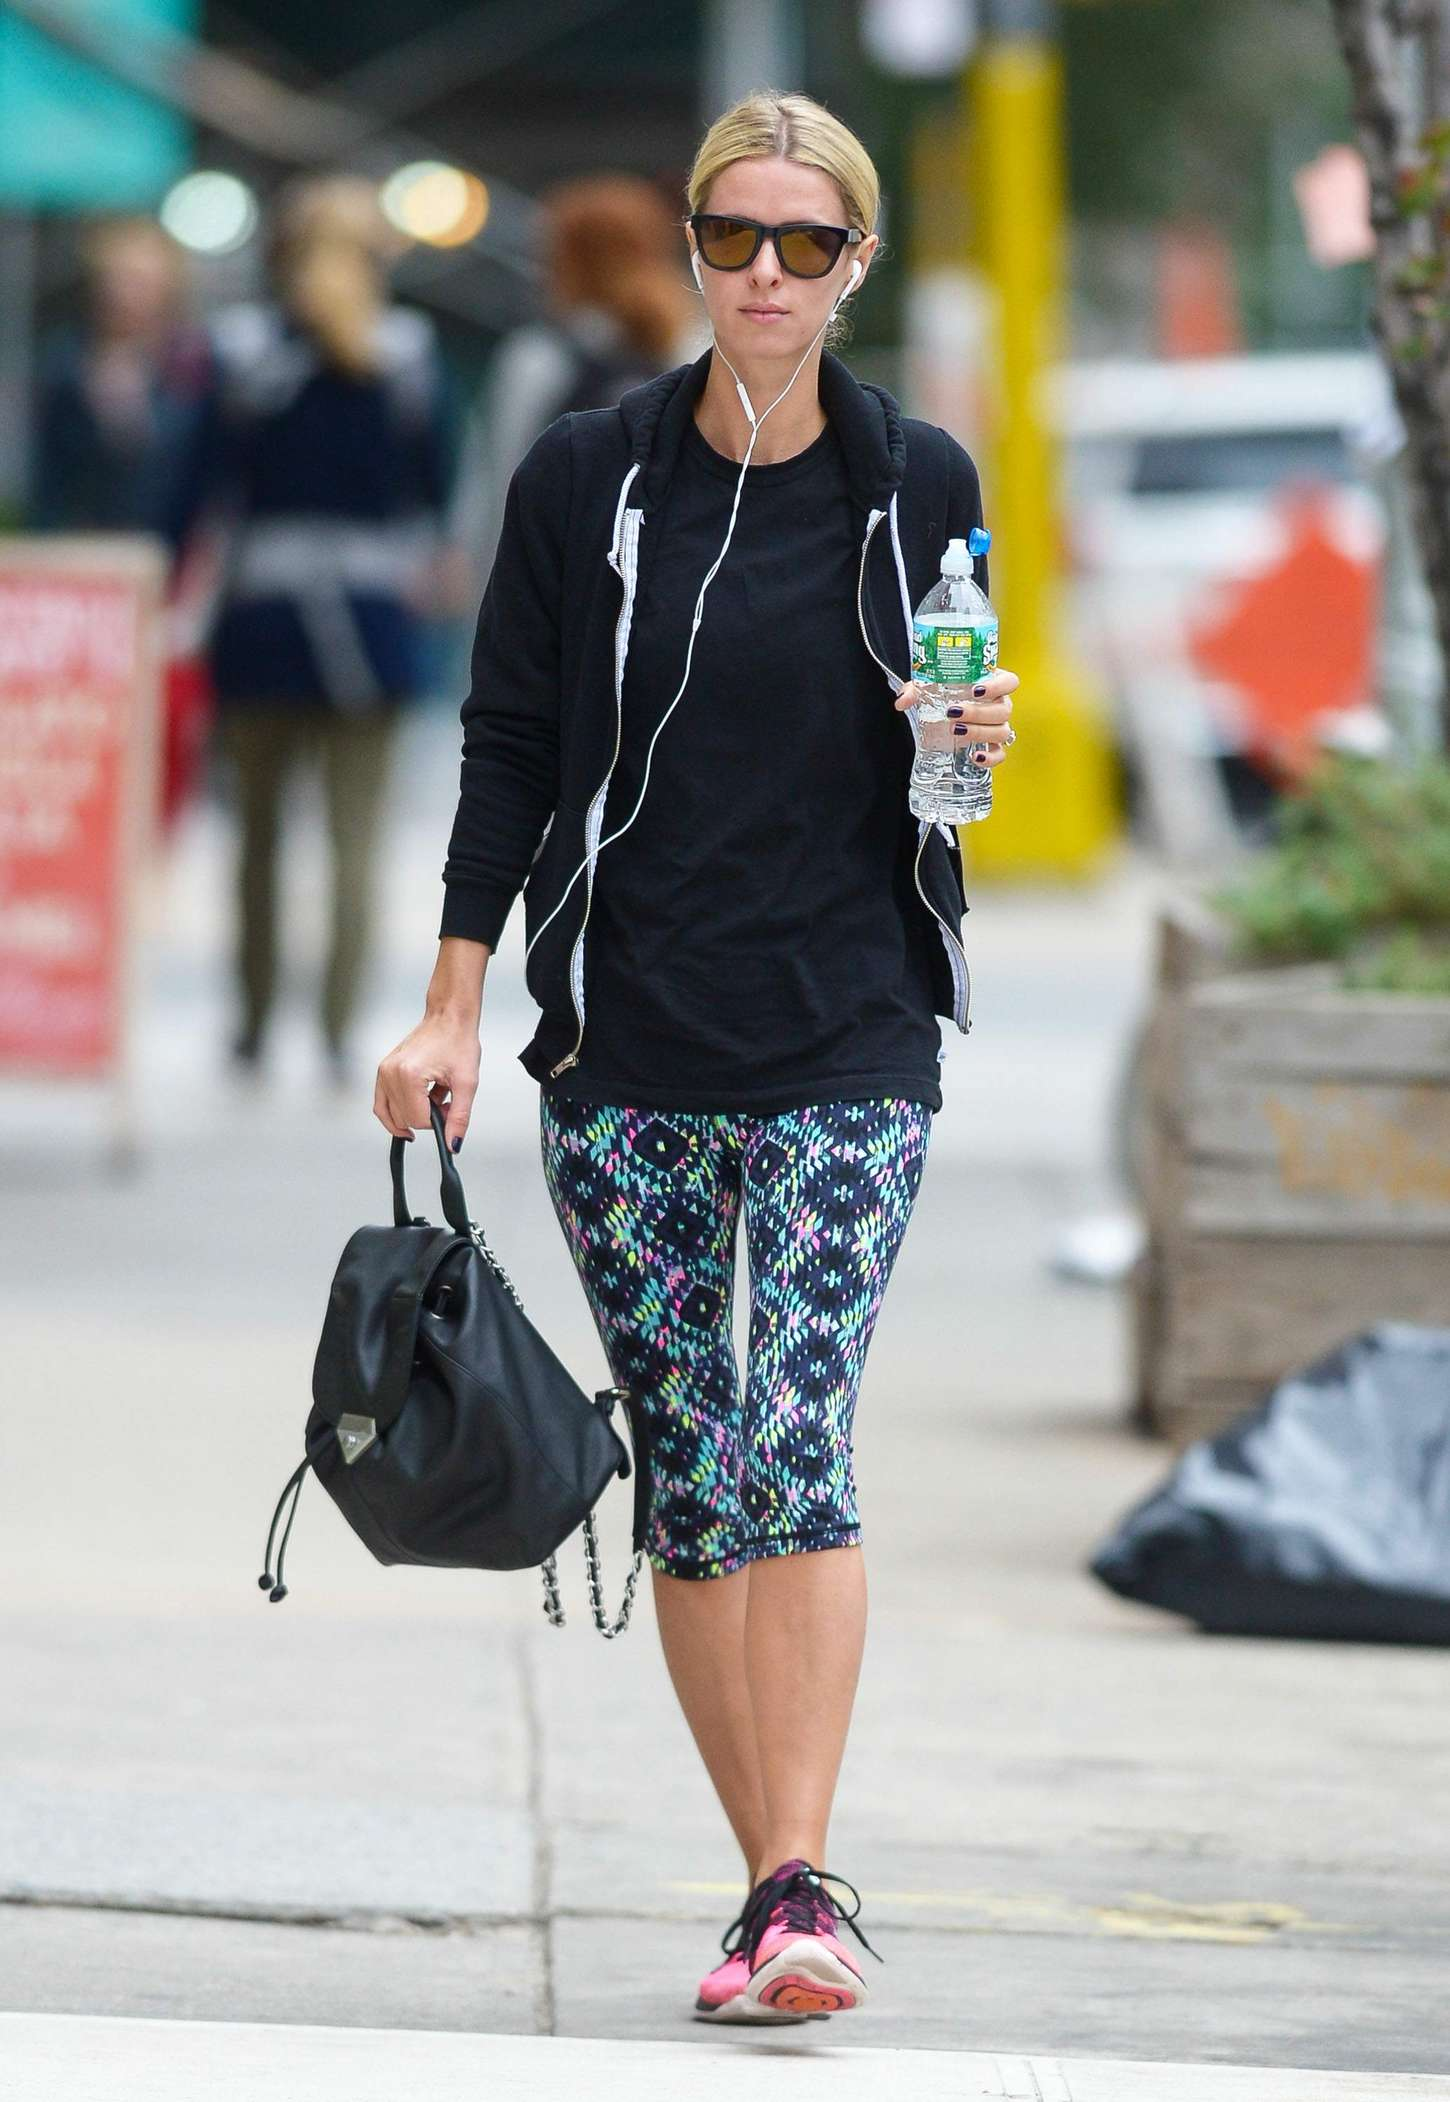 Nicky Hilton in Spandex out in New York City